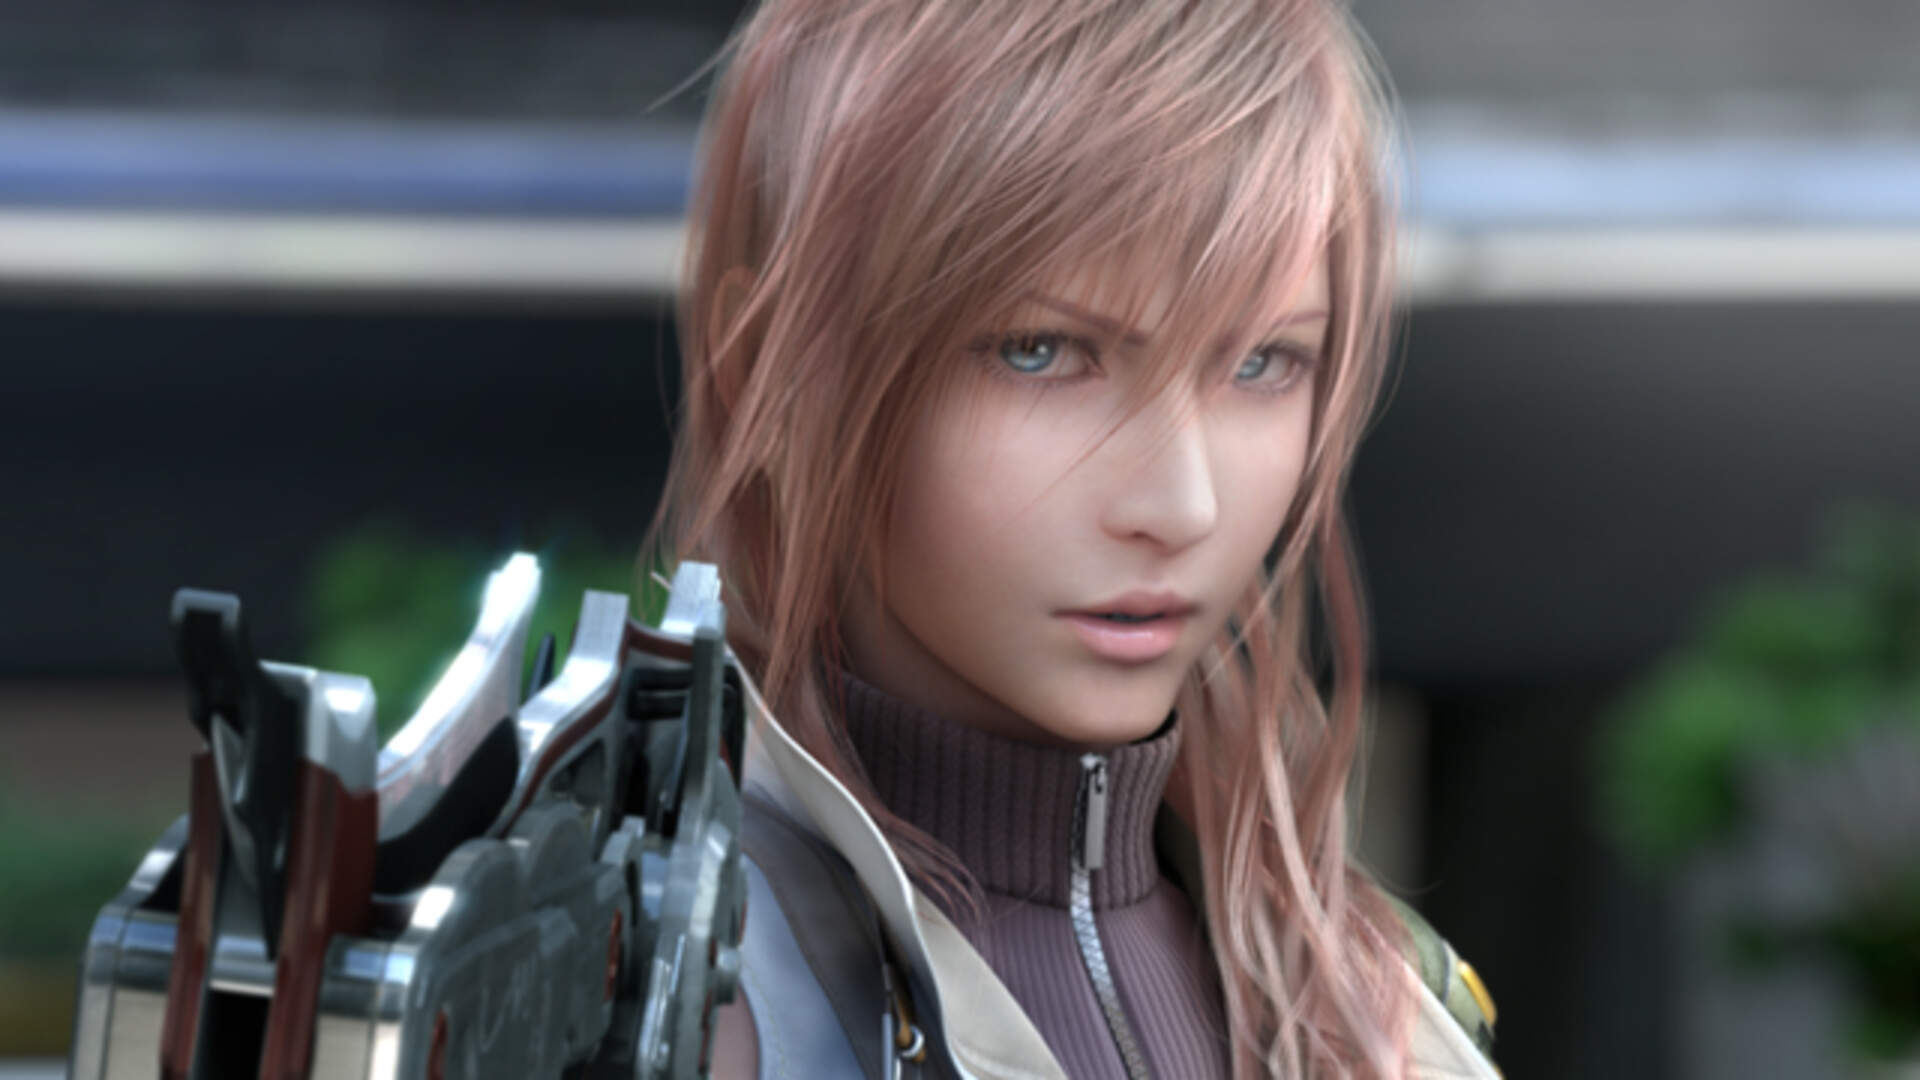 Final Fantasy XIII Trilogy Coming to Xbox One Backwards Compatibility Next Week